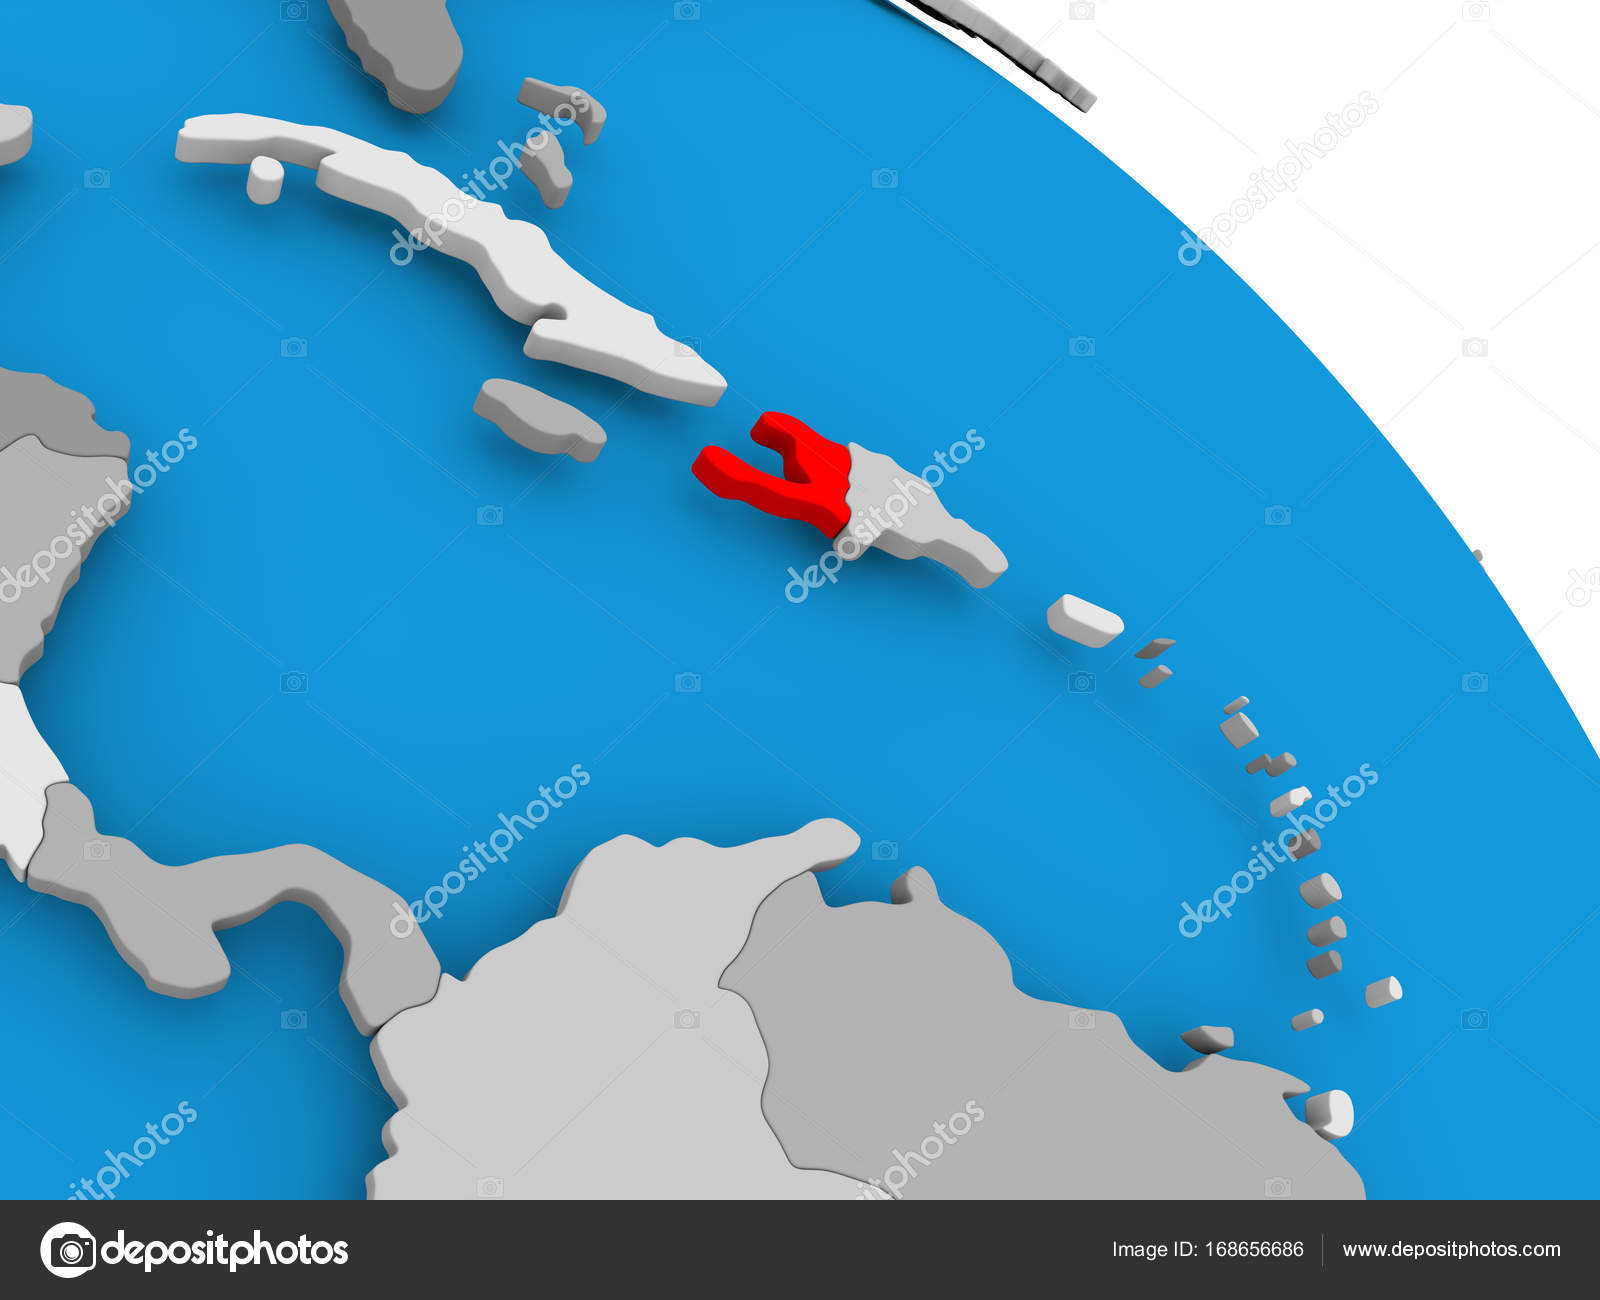 Haiti in red on map stock photo tomiger 168656686 illustration of haiti highlighted in red on globe 3d illustration photo by tomiger gumiabroncs Images